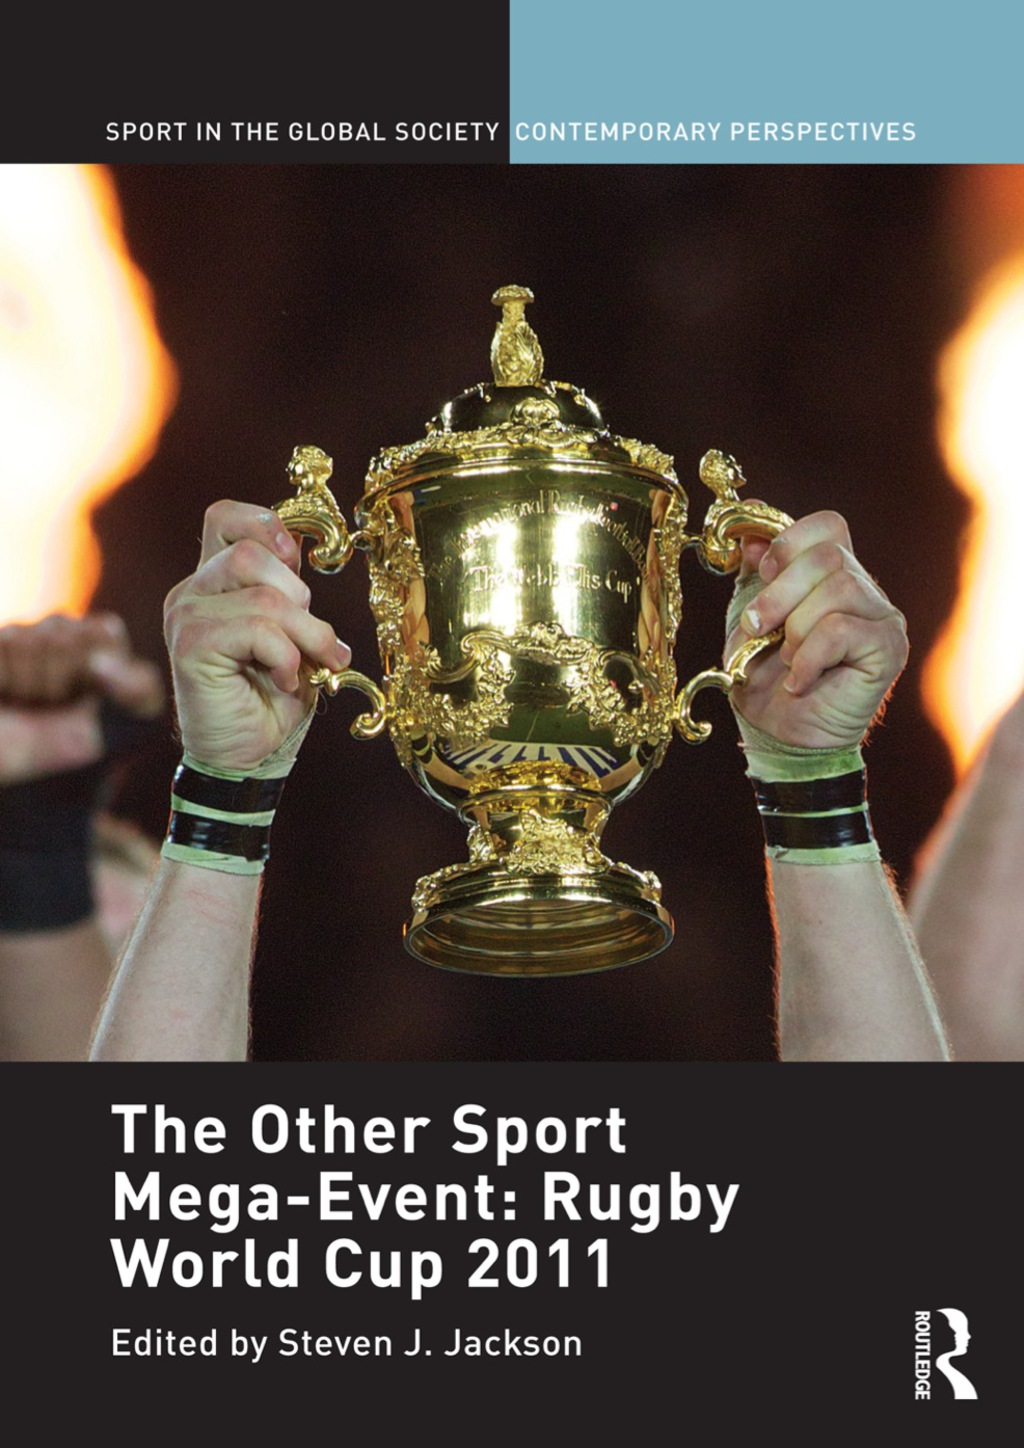 The Other Sport Mega-Event: Rugby World Cup 2011 (ebook) eBooks